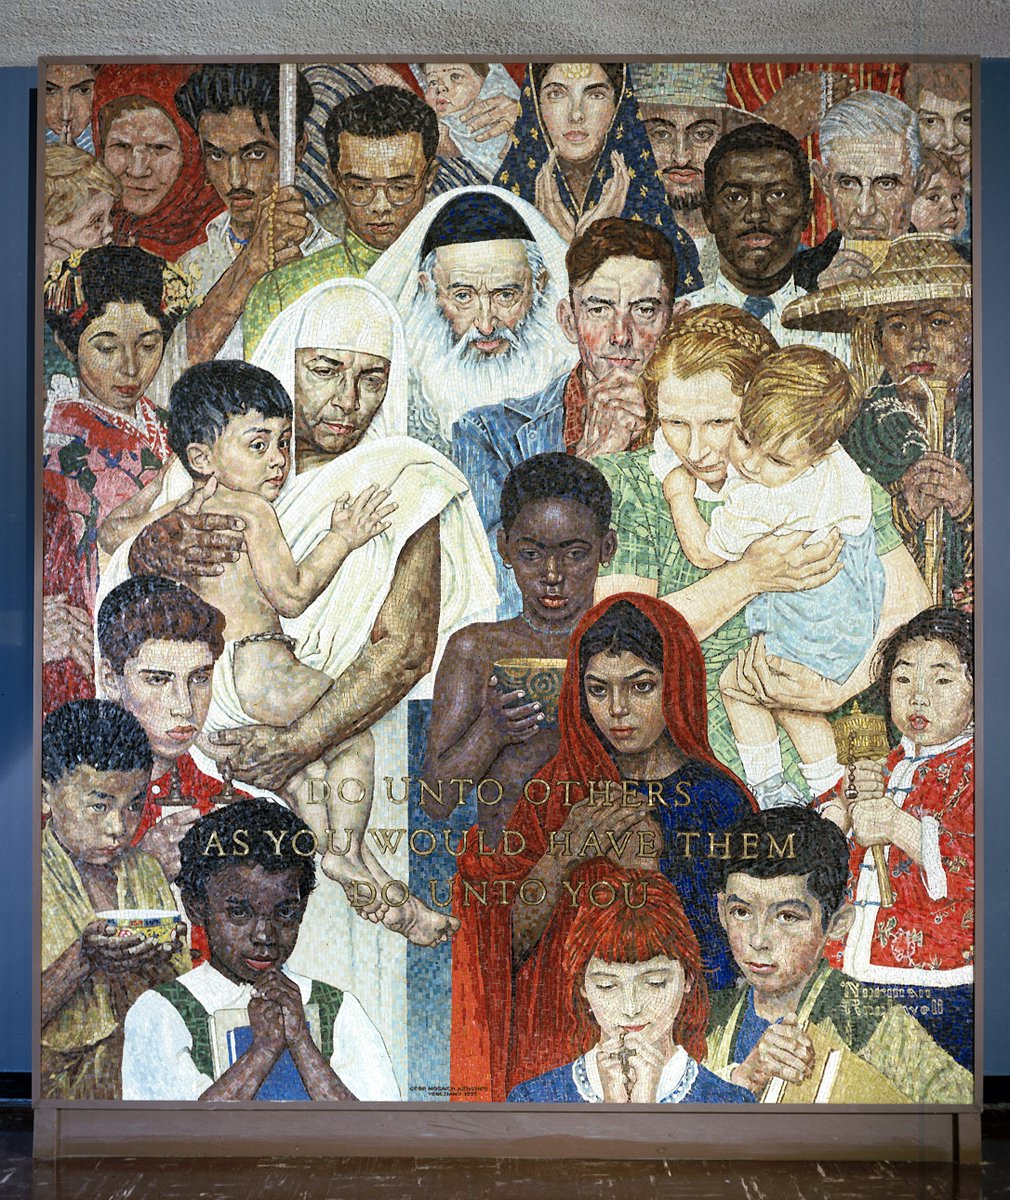 """📷: """"Do unto others as you would have them do unto you"""" - the """"Golden Rule"""" mosaic based on a painting by US artist Norman Rockwell on display at UNHQ in NYC. Saturday is #ToleranceDay: https://bit.ly/2NQyXYk"""